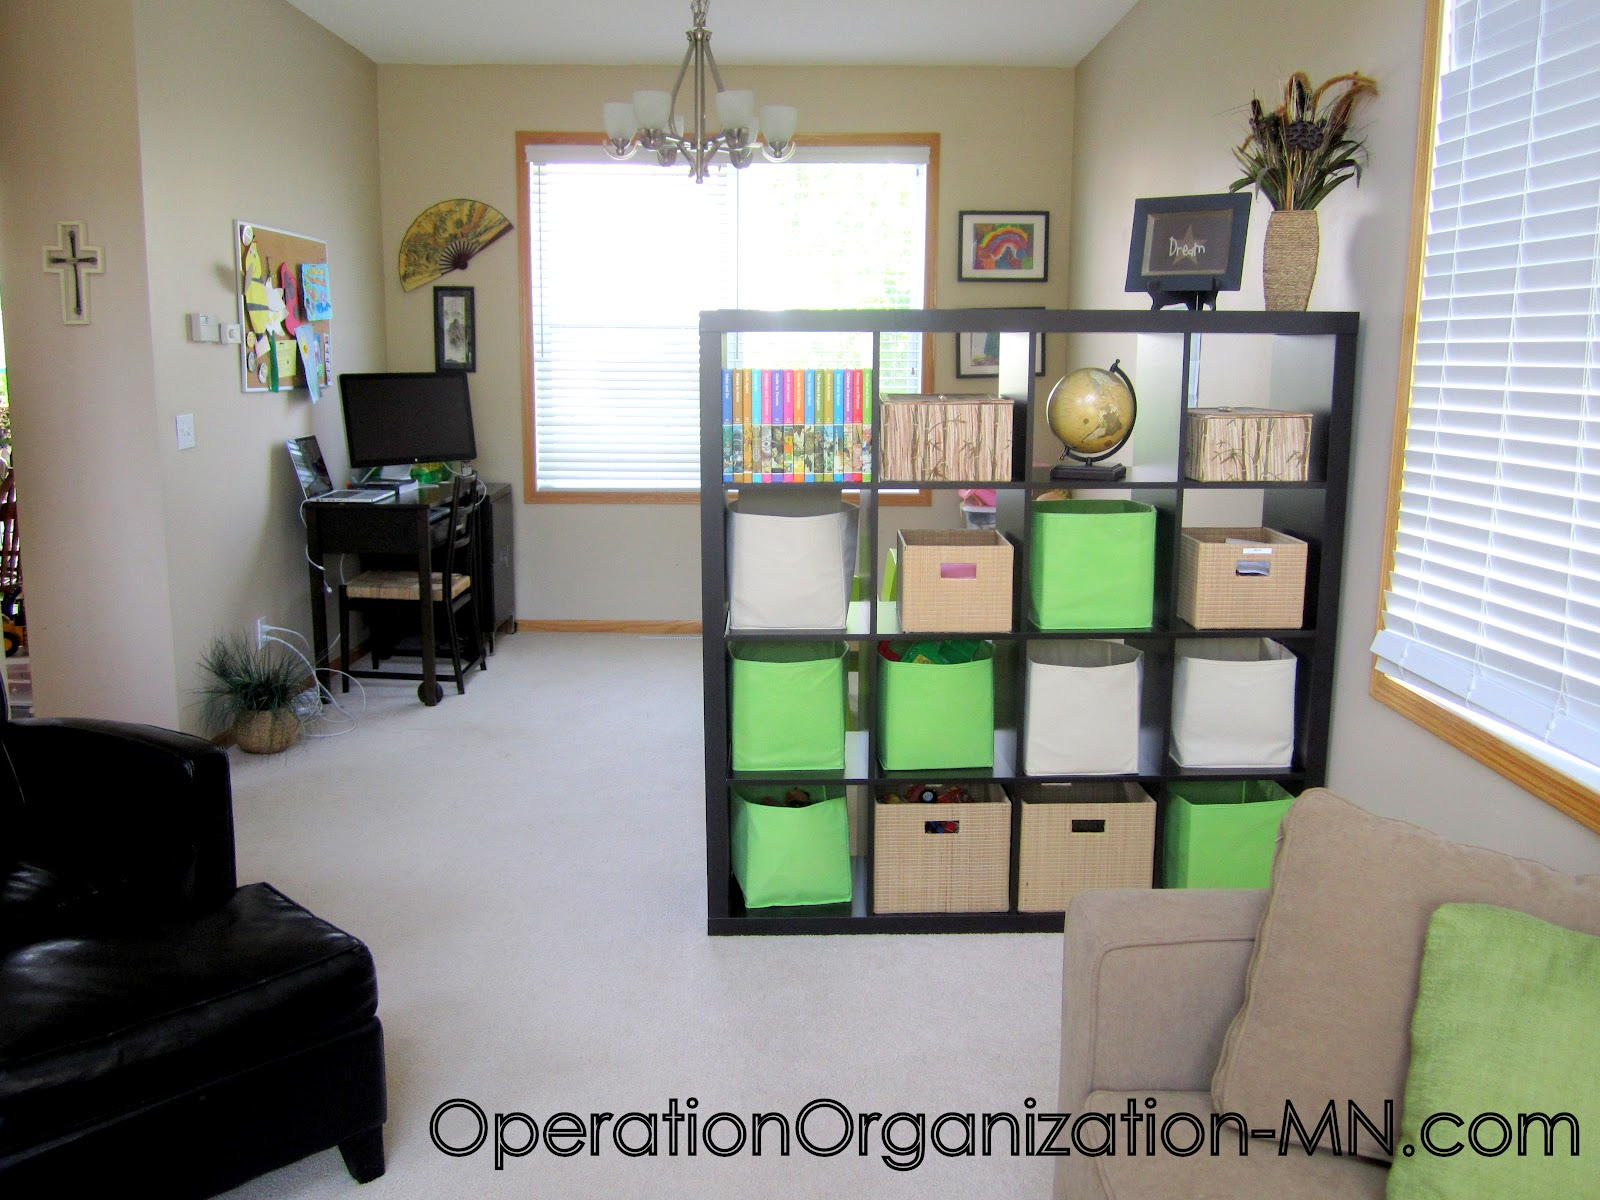 Operation organization professional organizer peachtree for Organize small living room